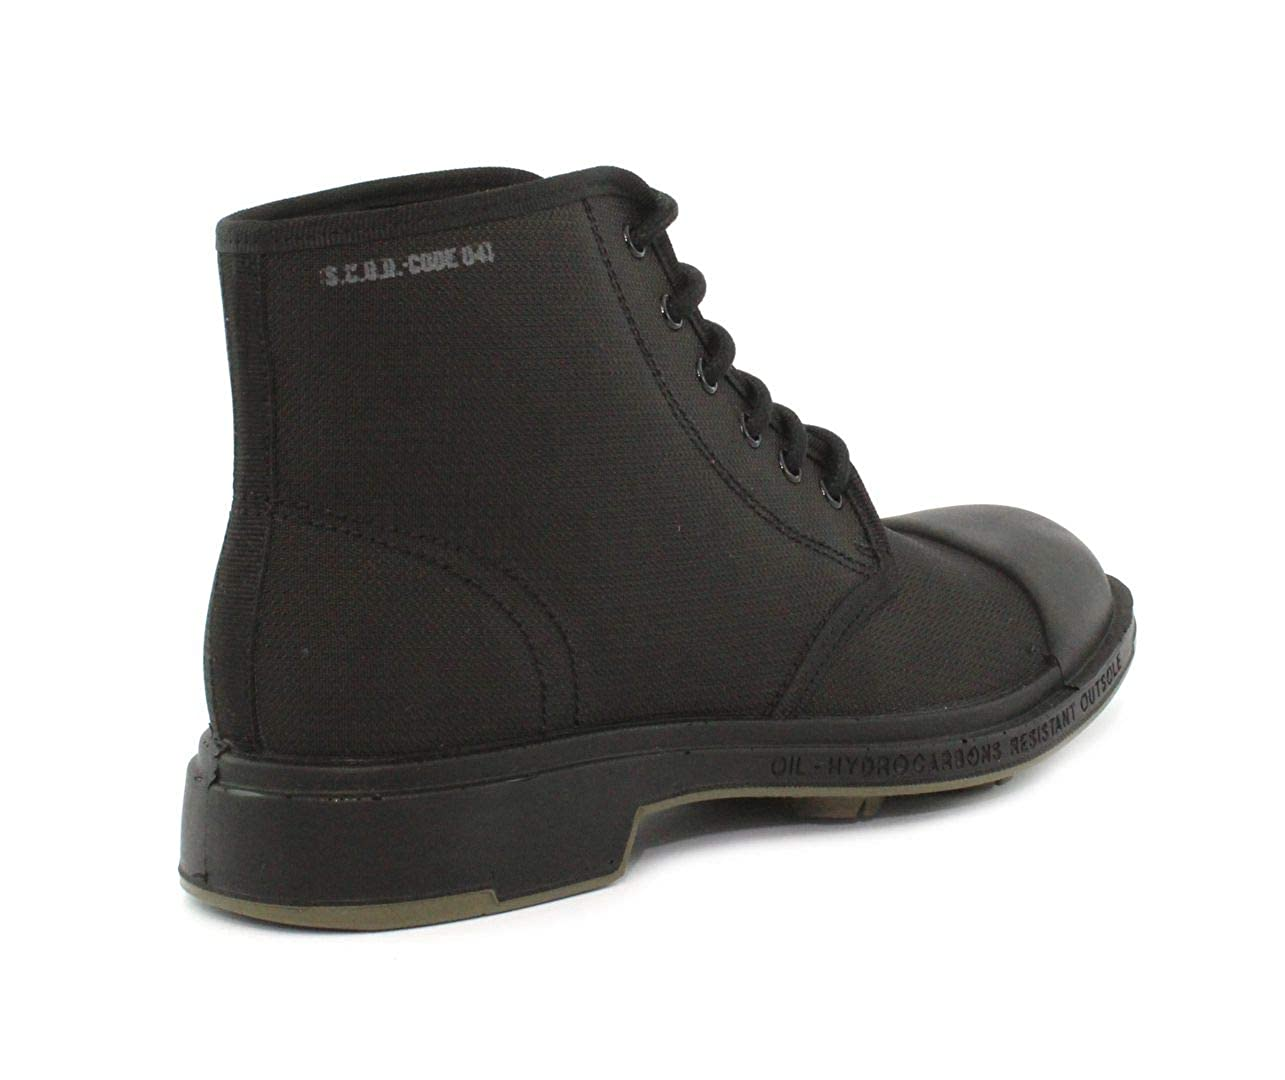 Pezzol Scud041fz11 Black Anti Chaussures Boots Cut 1951 gS7qvfga